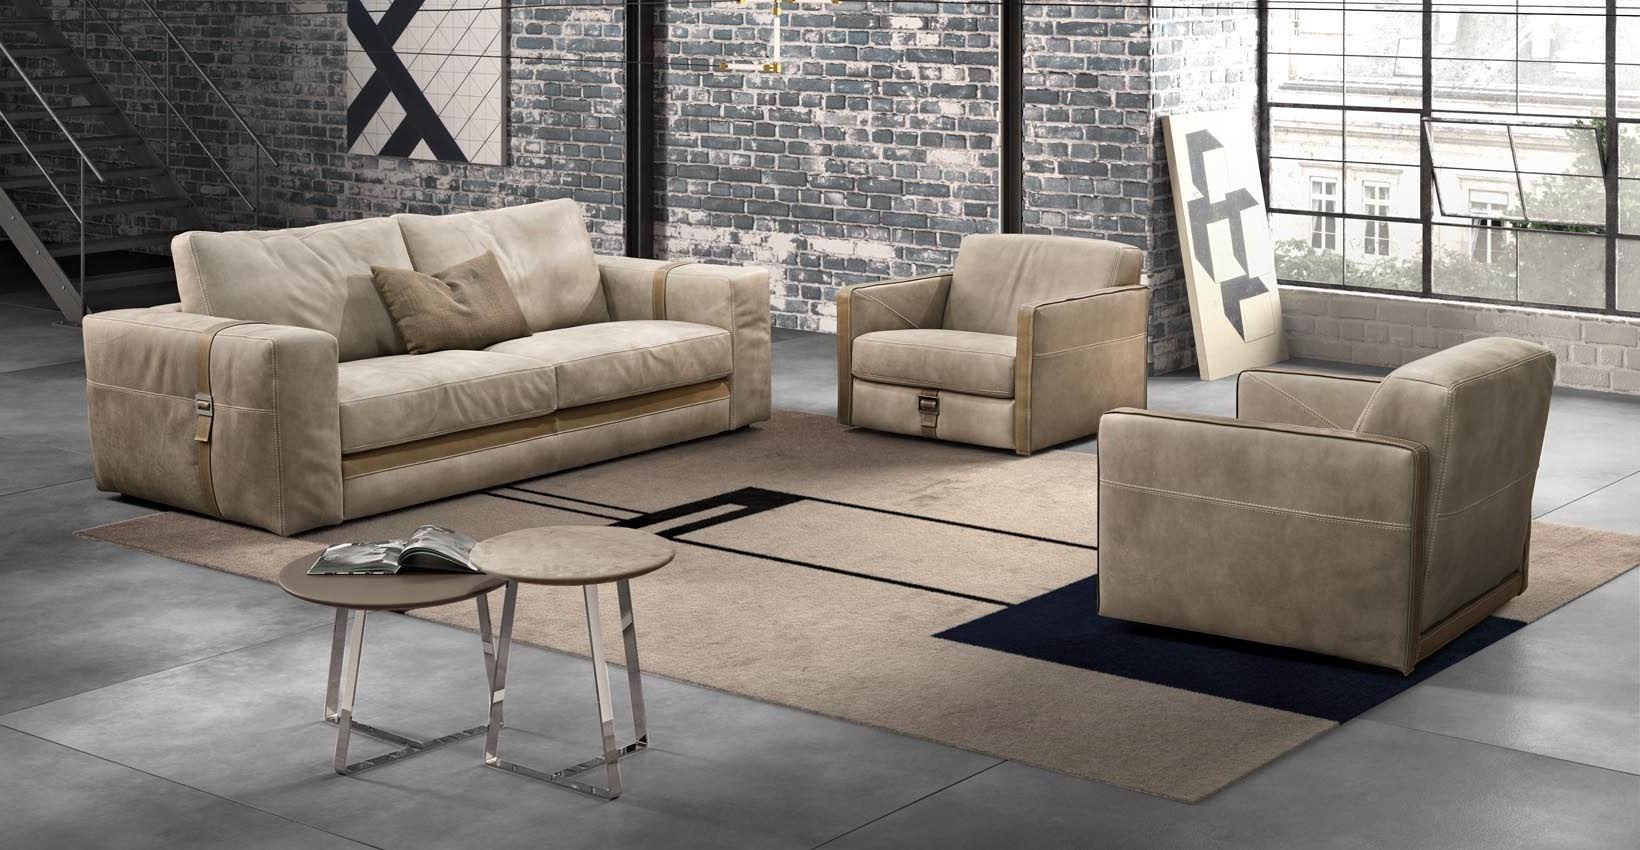 Well Liked Richmond Sofas Regarding Contemporary Sofa / Leather / 2 Seater / Beige – Richmond – Gamma (View 11 of 20)